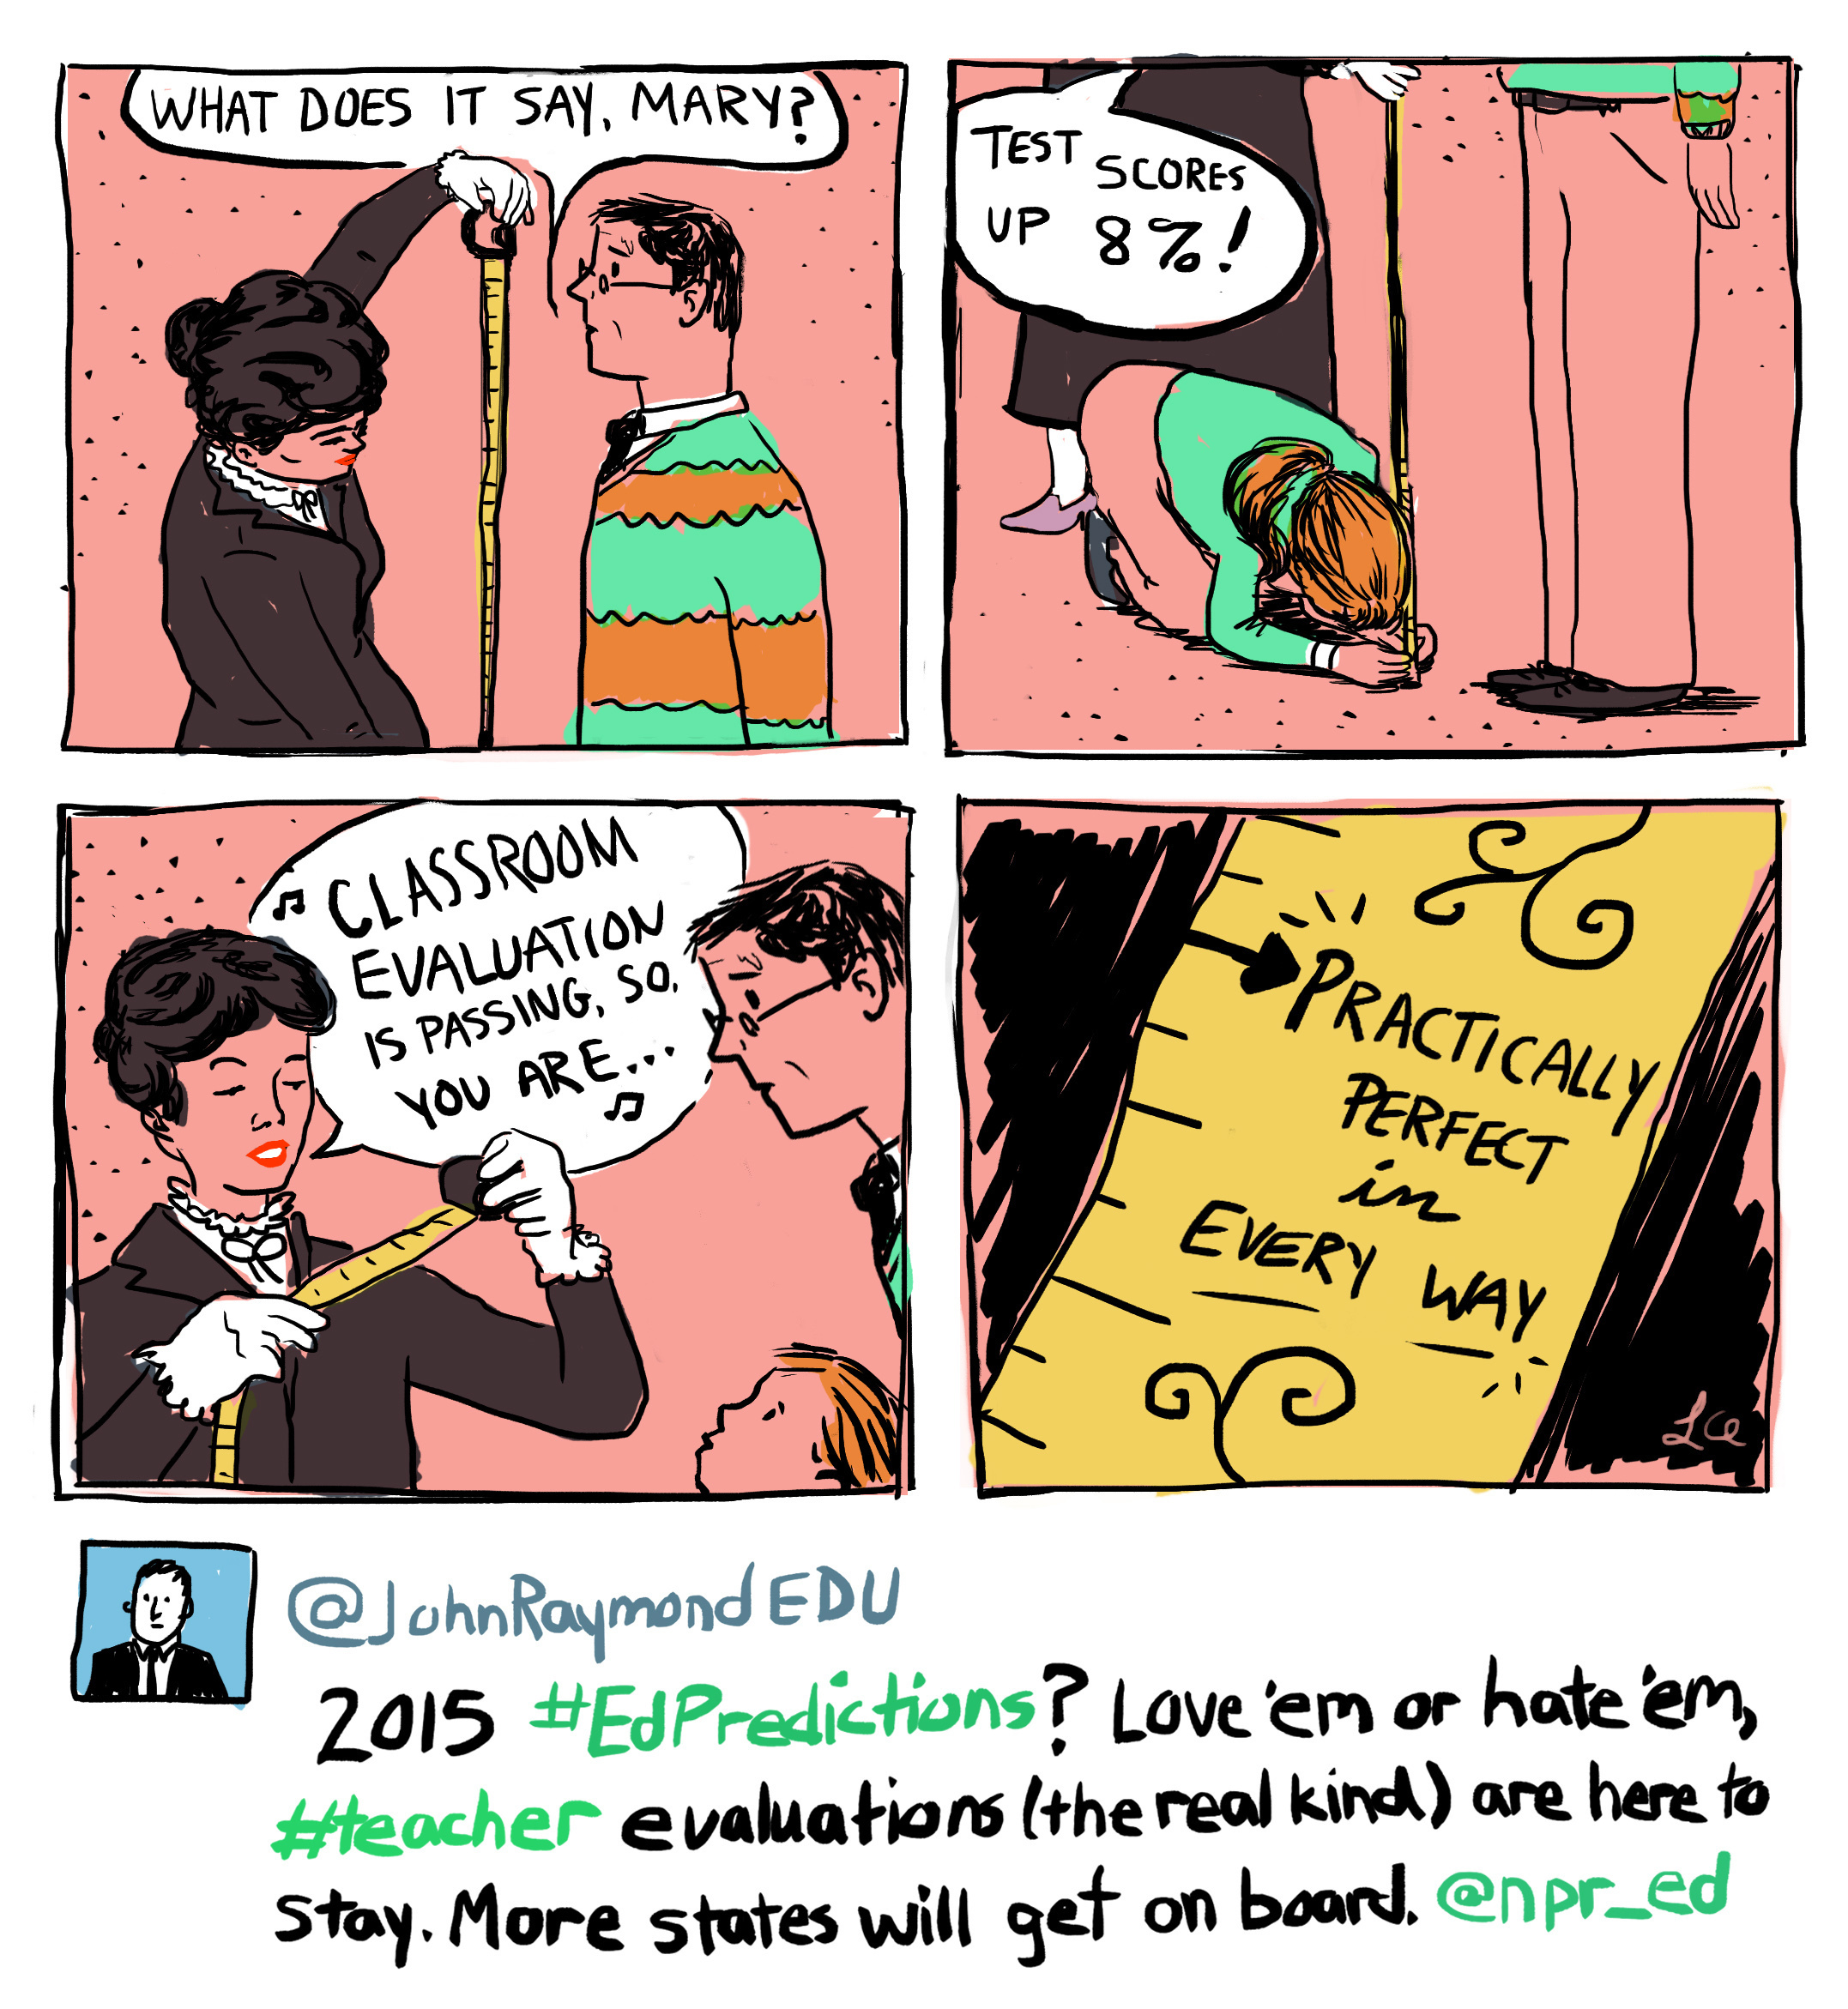 Sketchucation: #EdPredictions For 2015